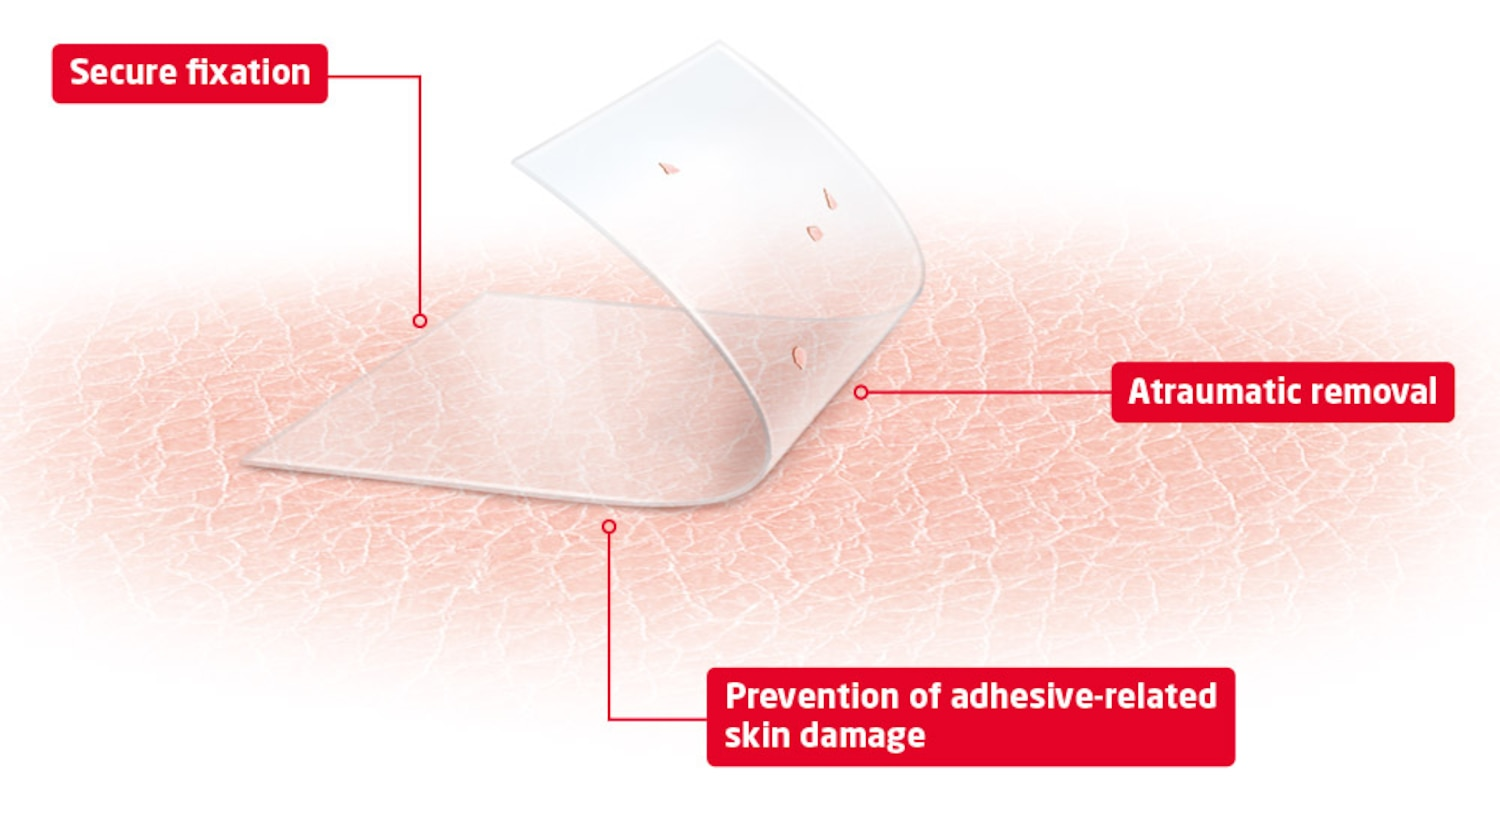 Product shot showing skin sensitive technology benefits: secure fixation, atraumatic removal and prevention of adhesive-related skin damage.